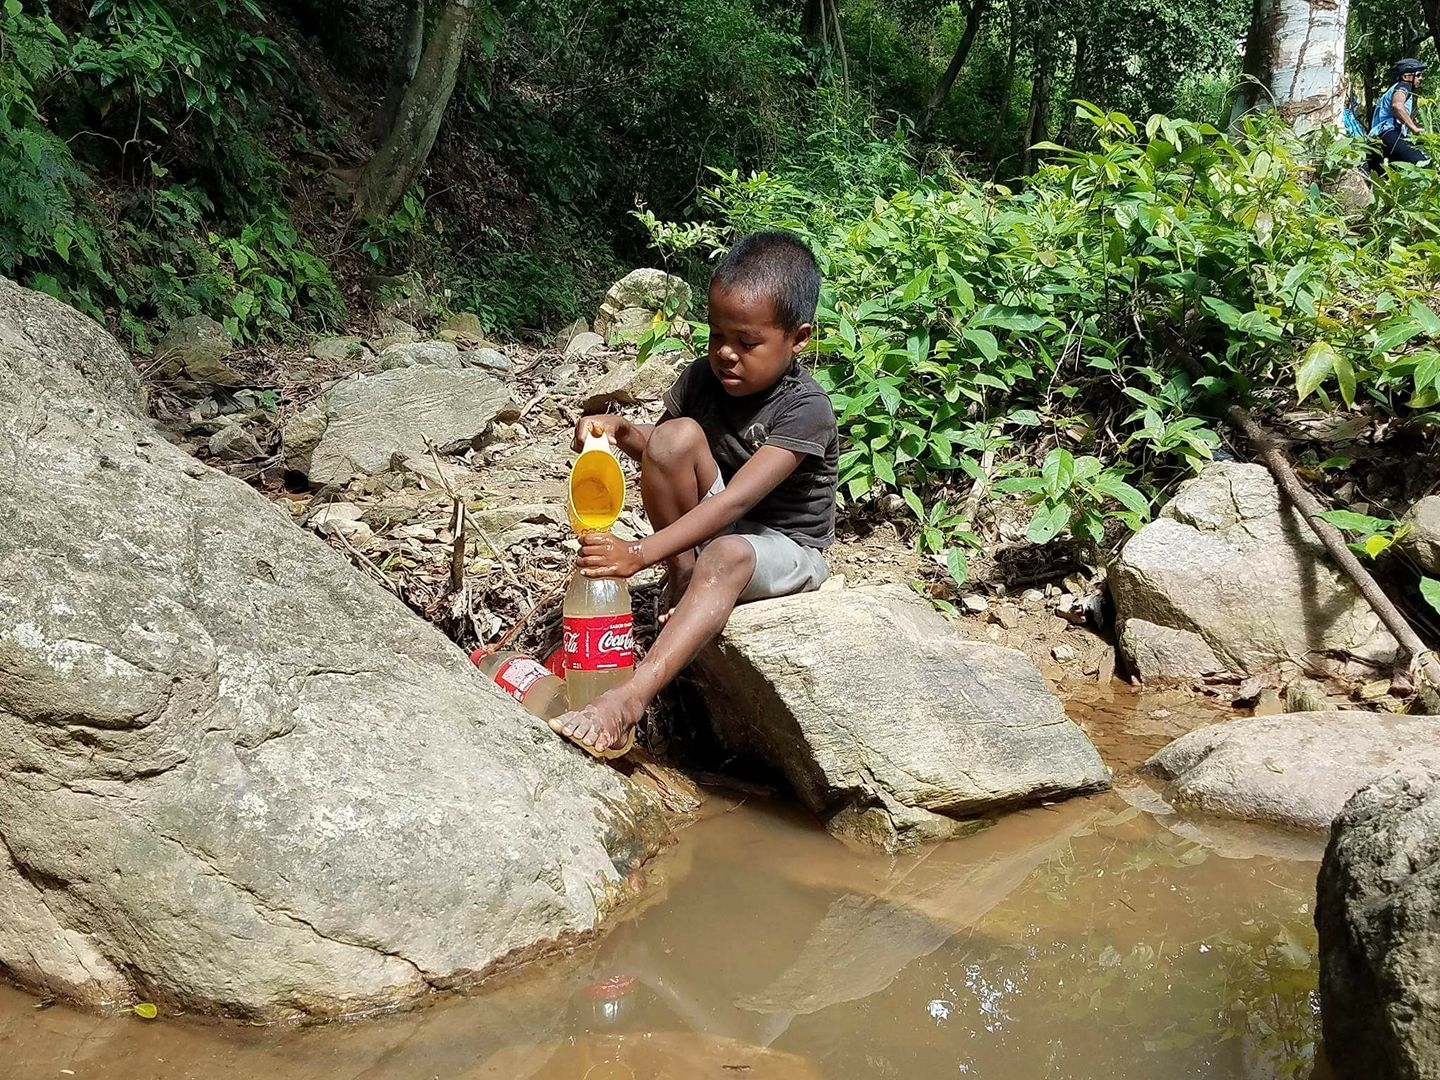 Young boy collecting dirty water from a stream into a Coke bottle